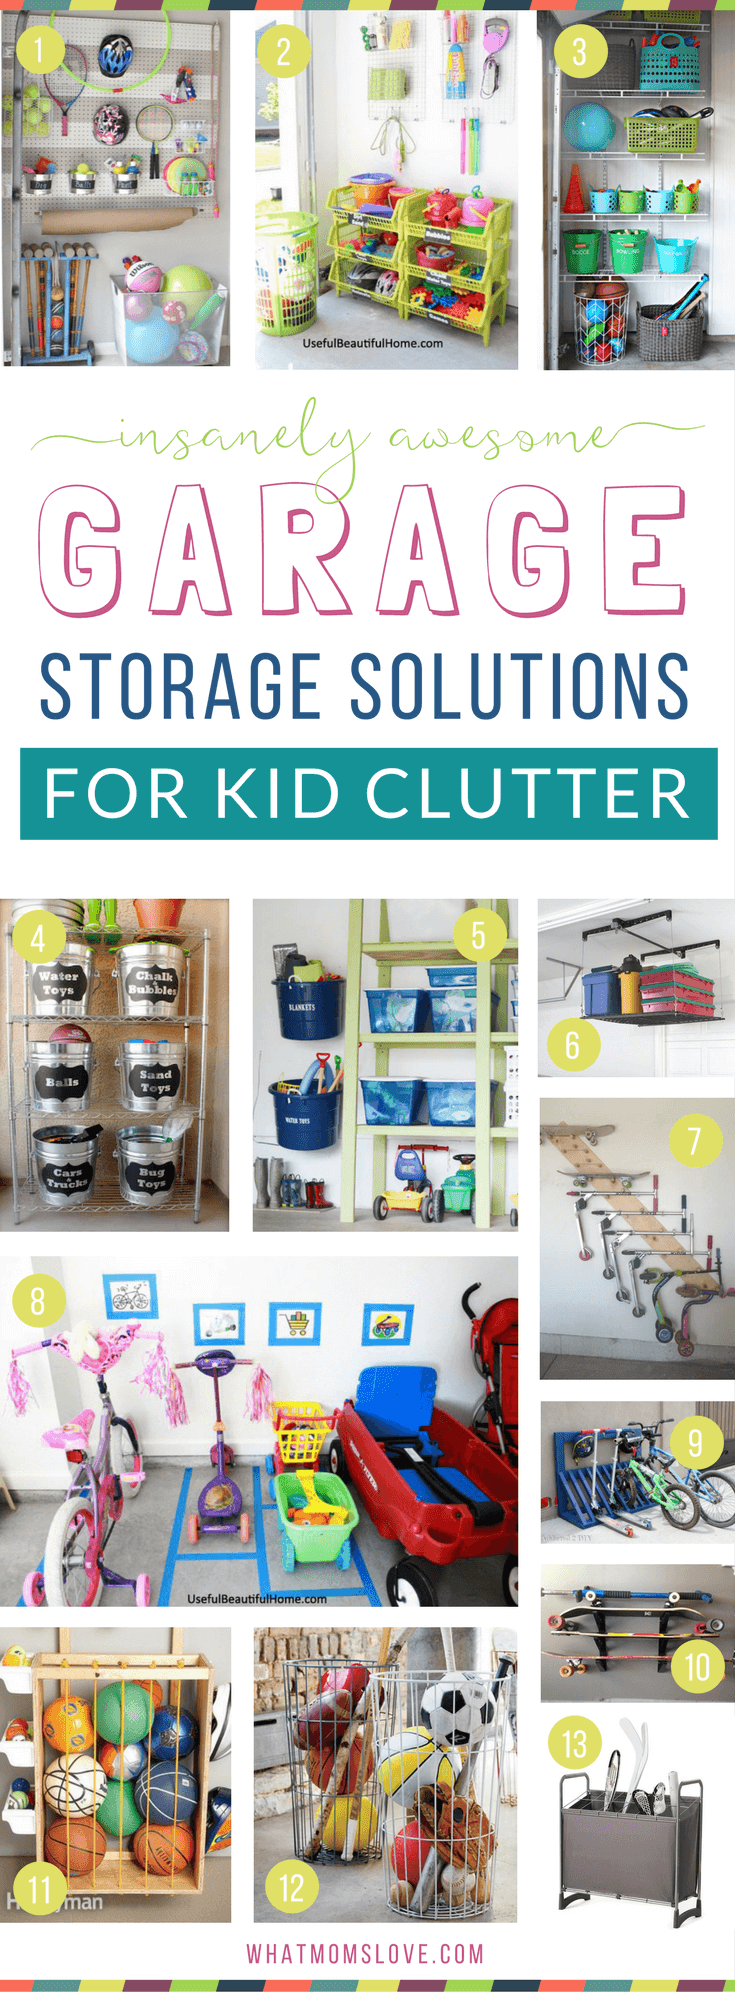 How to organize your garage to eliminate toy clutter | DIY ideas, products, inspiration and tips to create more storage for your kids stuff! Plus hacks and tricks to organize your entire life for a fun summer with your family